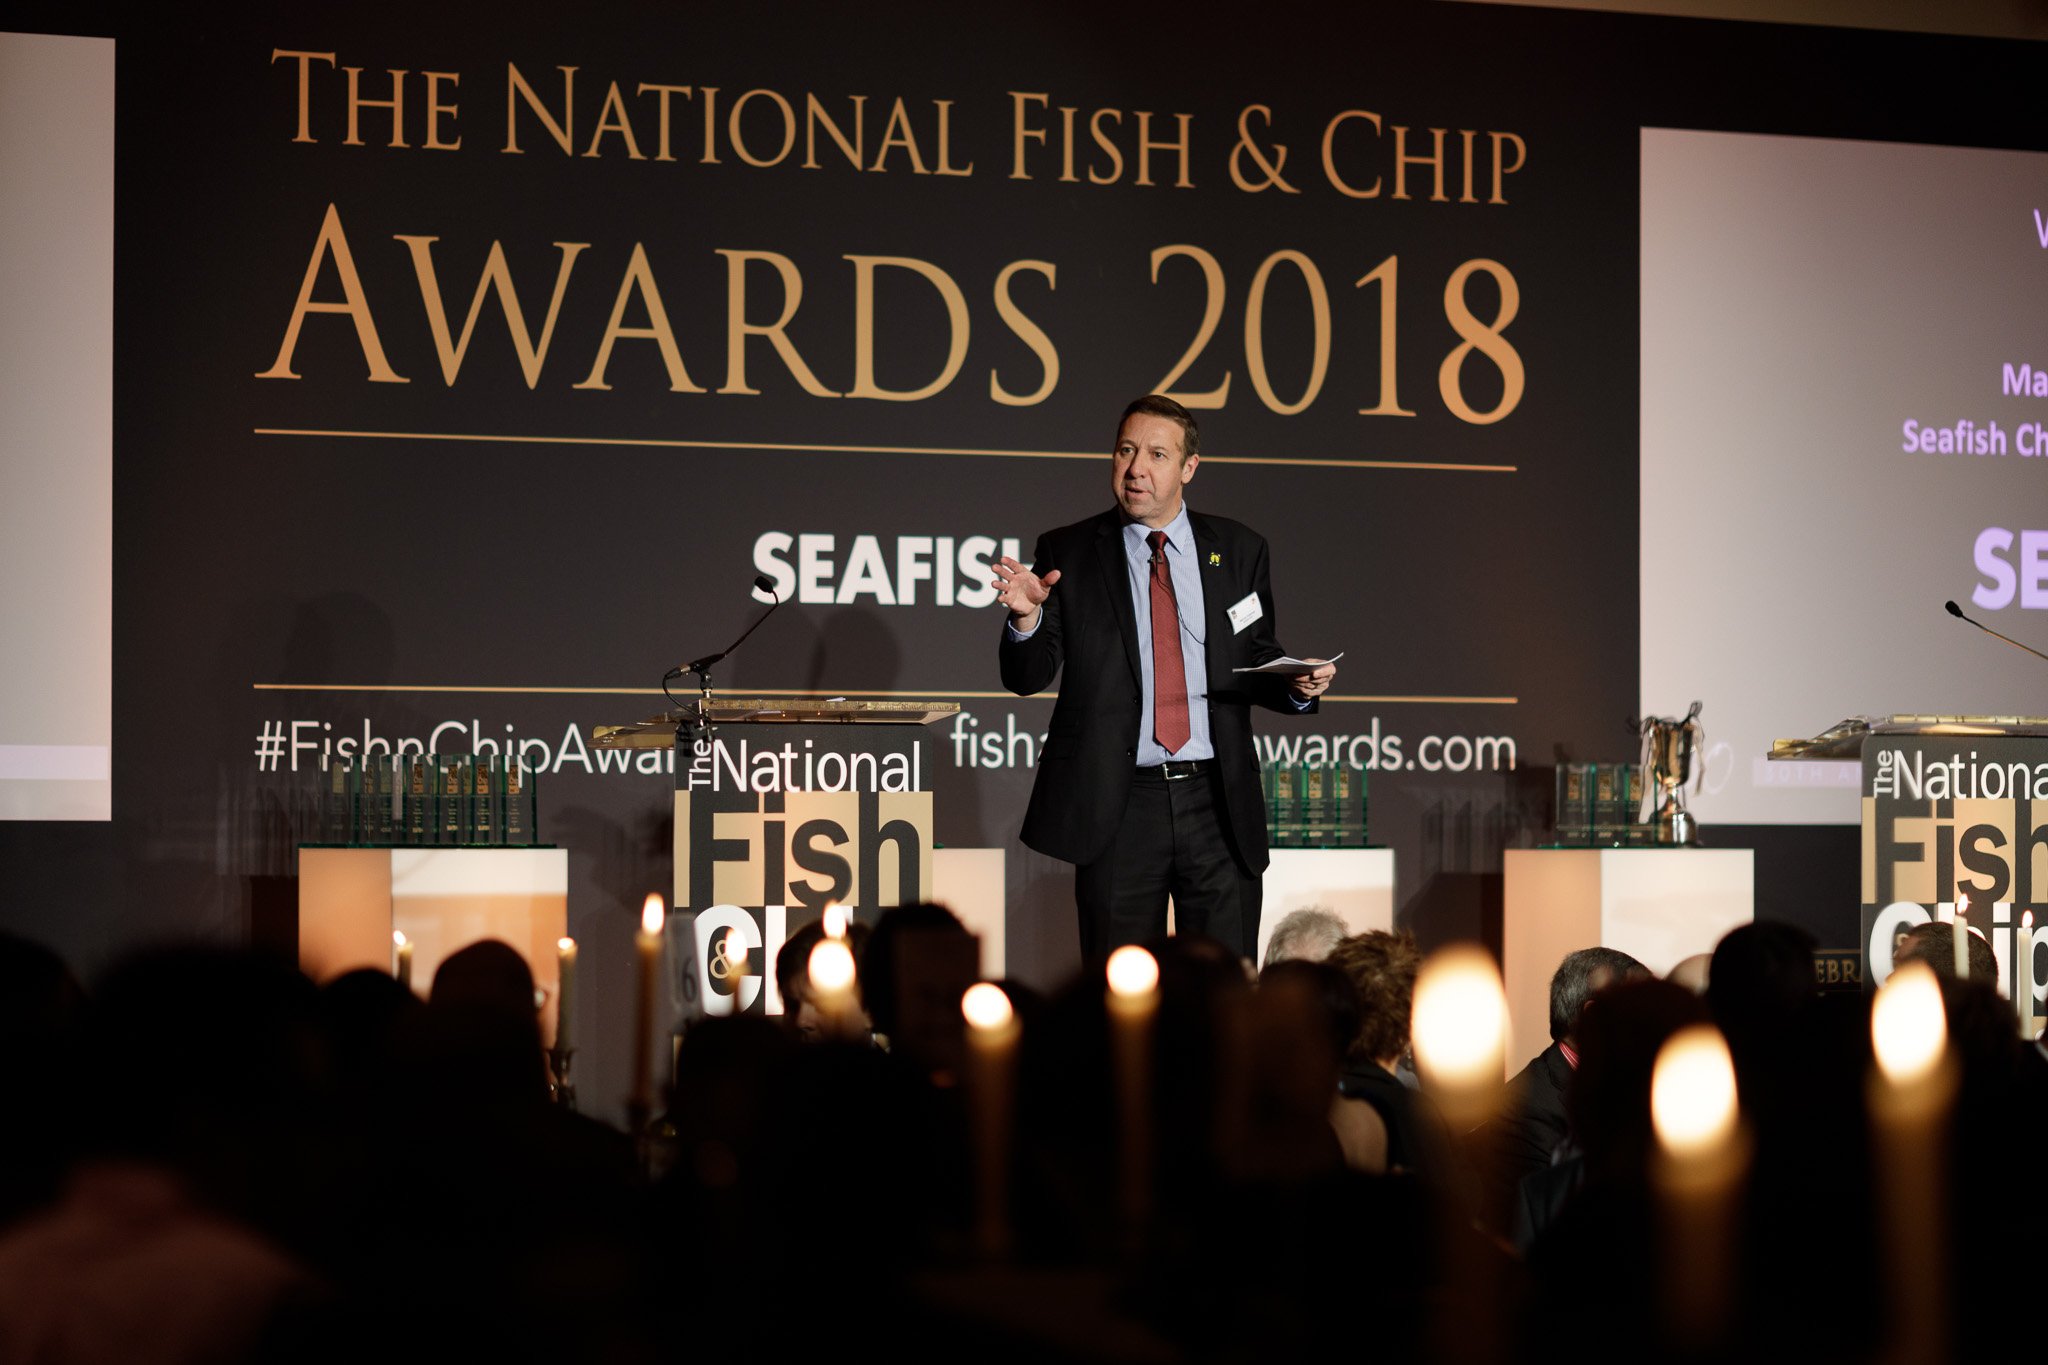 The National Fish & Chip Awards 2018